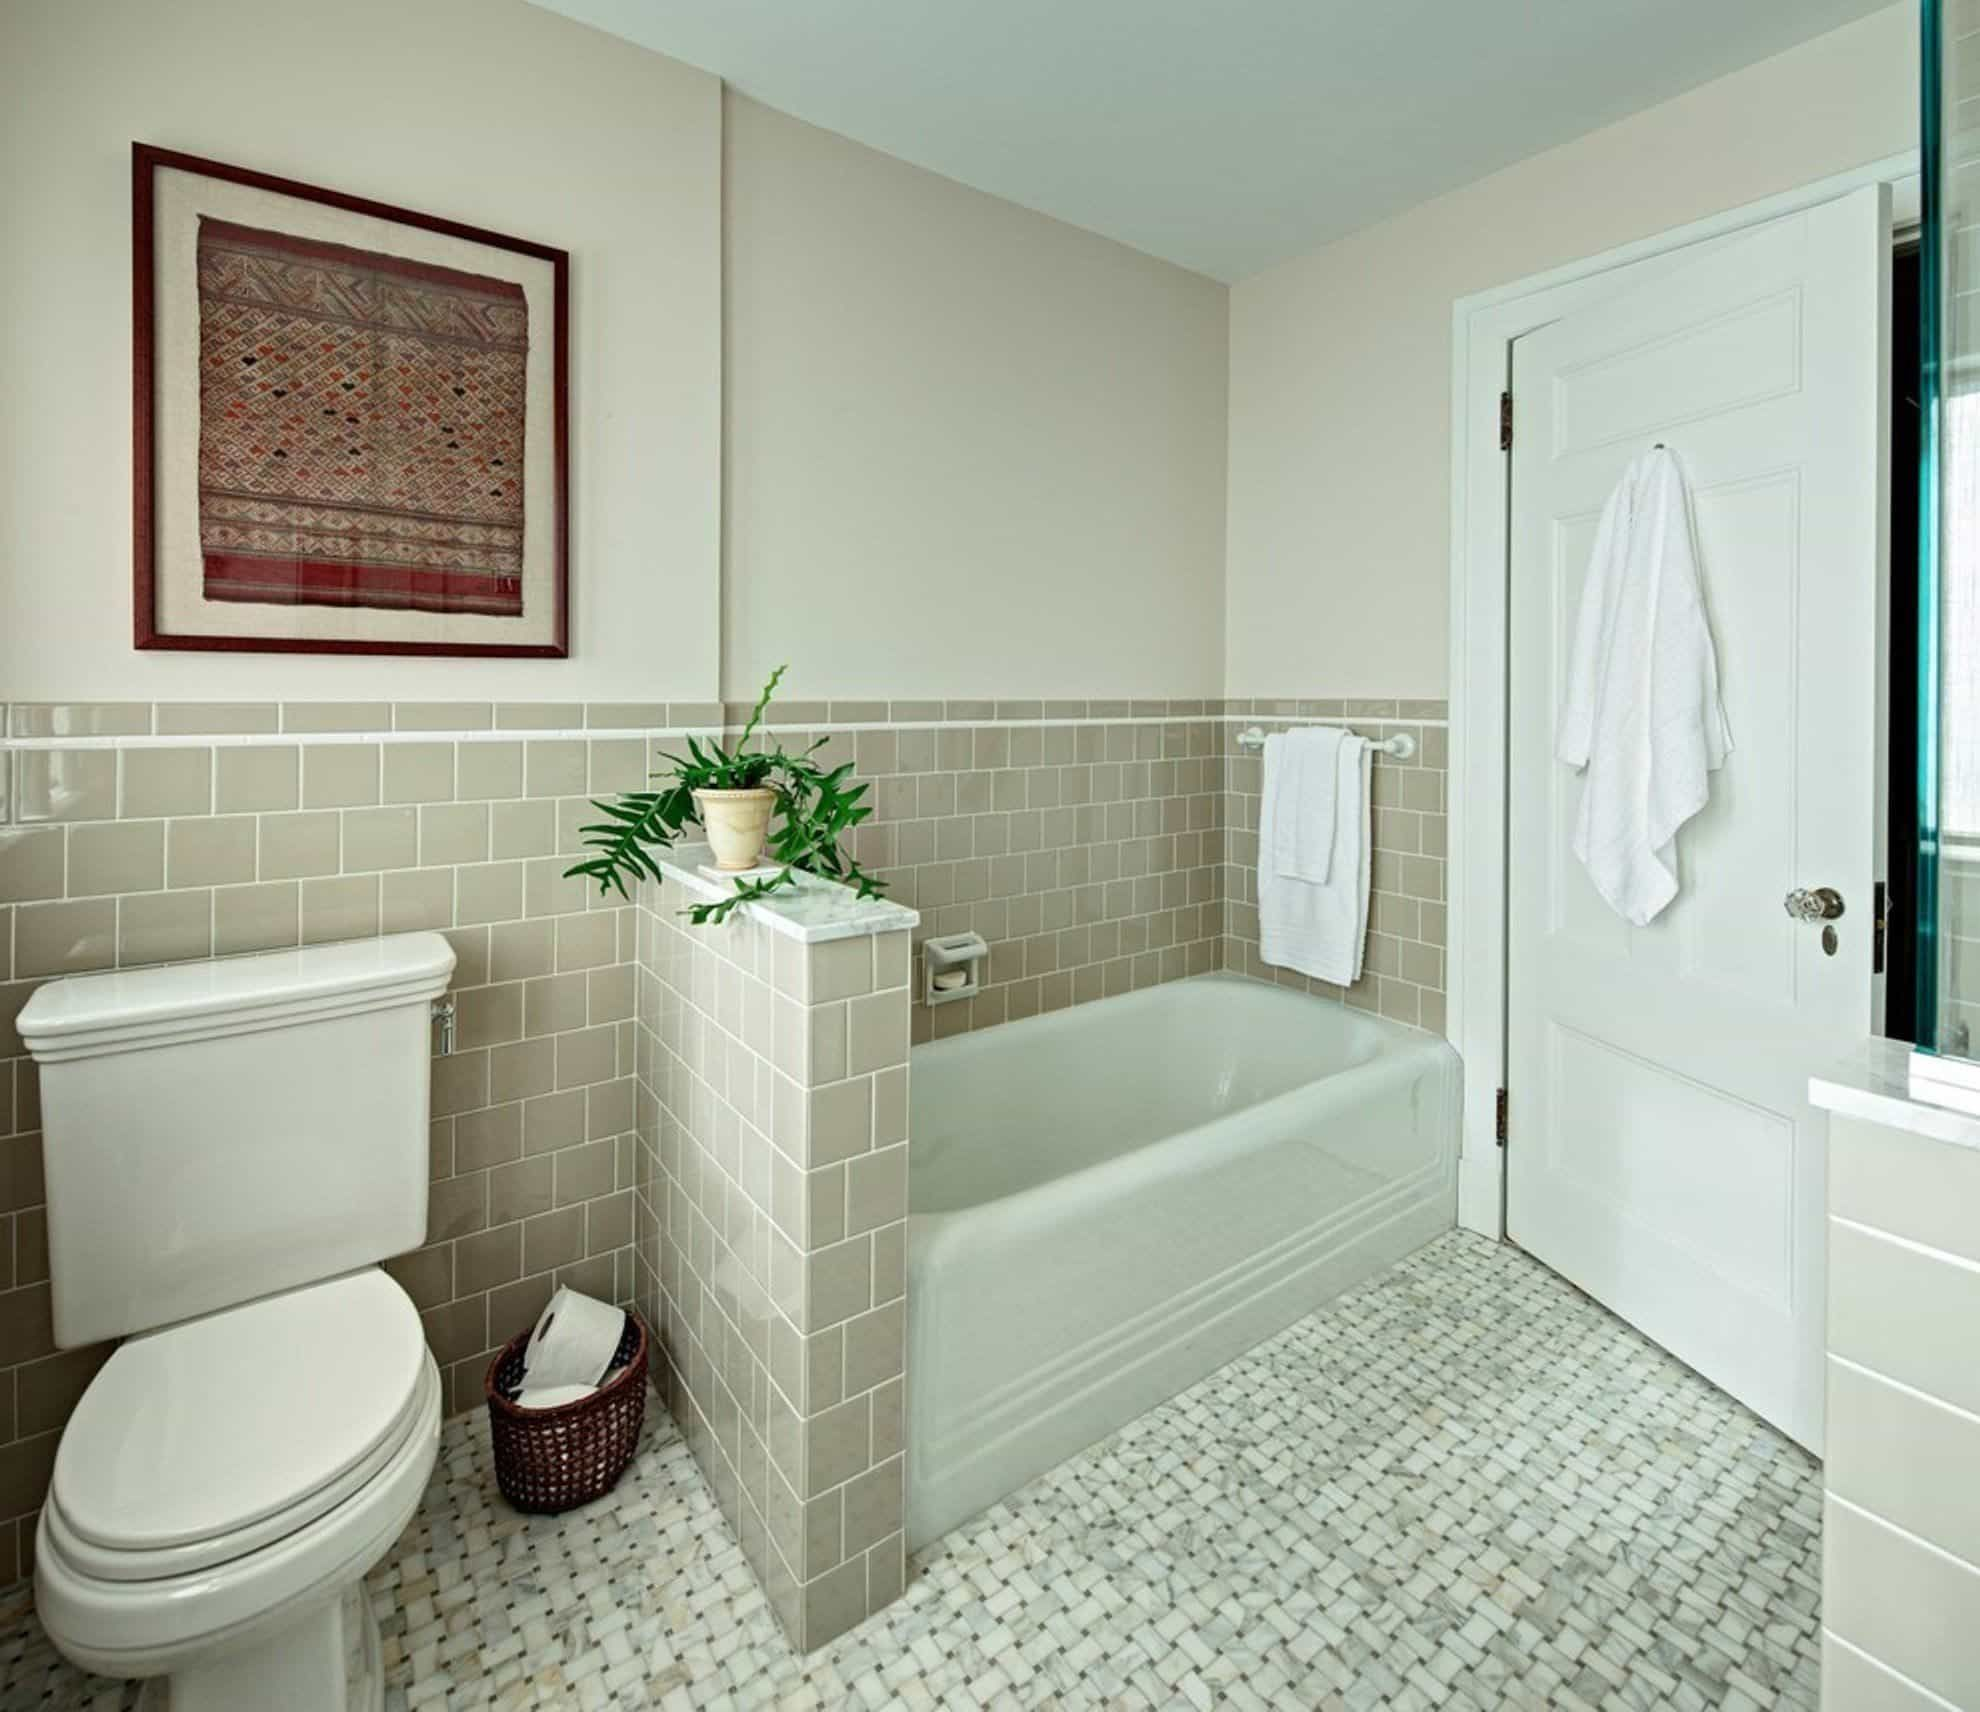 A Relaxing Space For Your Bathing Time